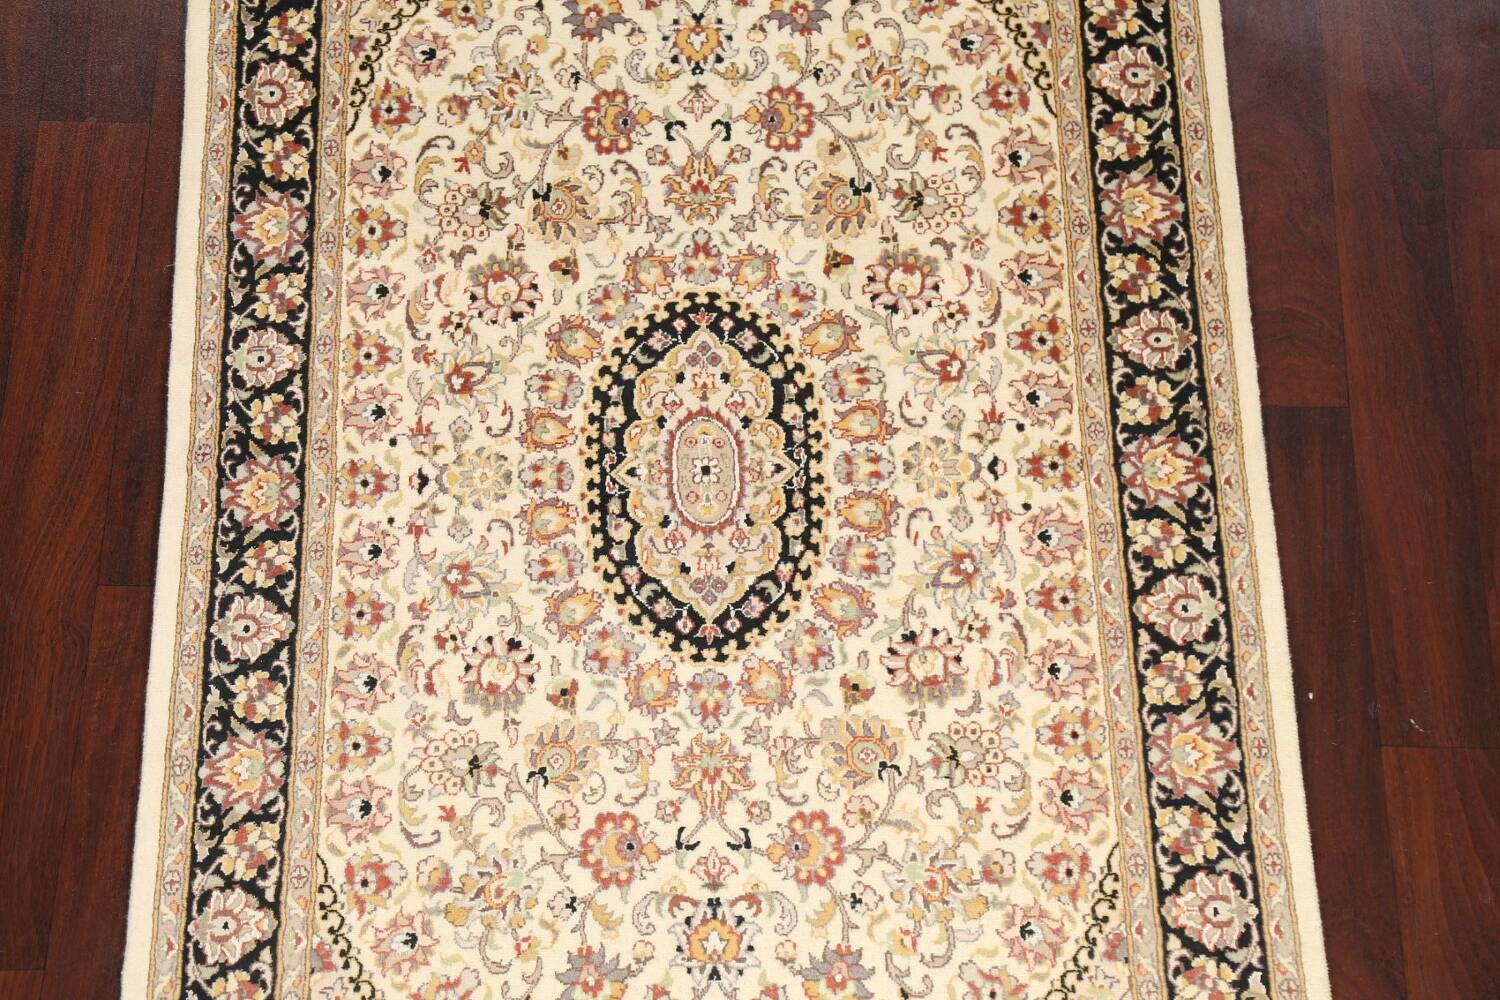 Vegetable Dye Floral Tabriz Oriental Area Rug 4x6 image 3